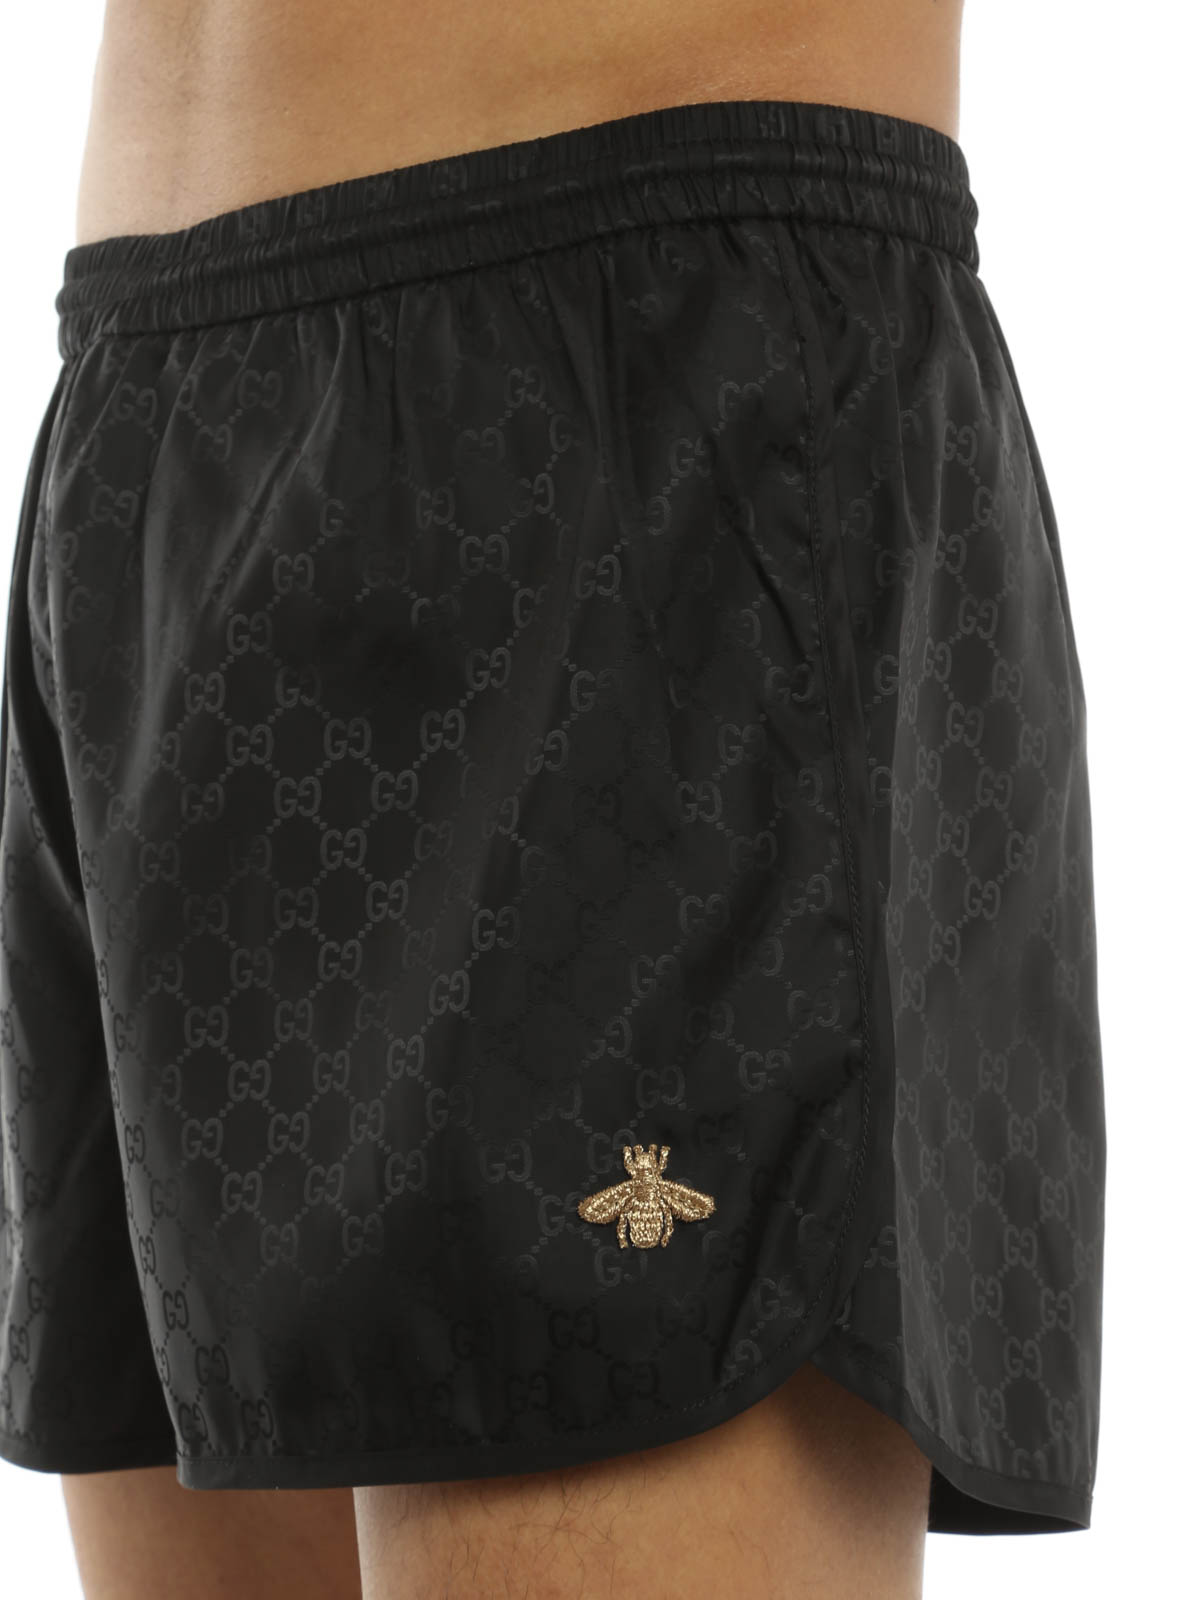 Buy gucci clothes online